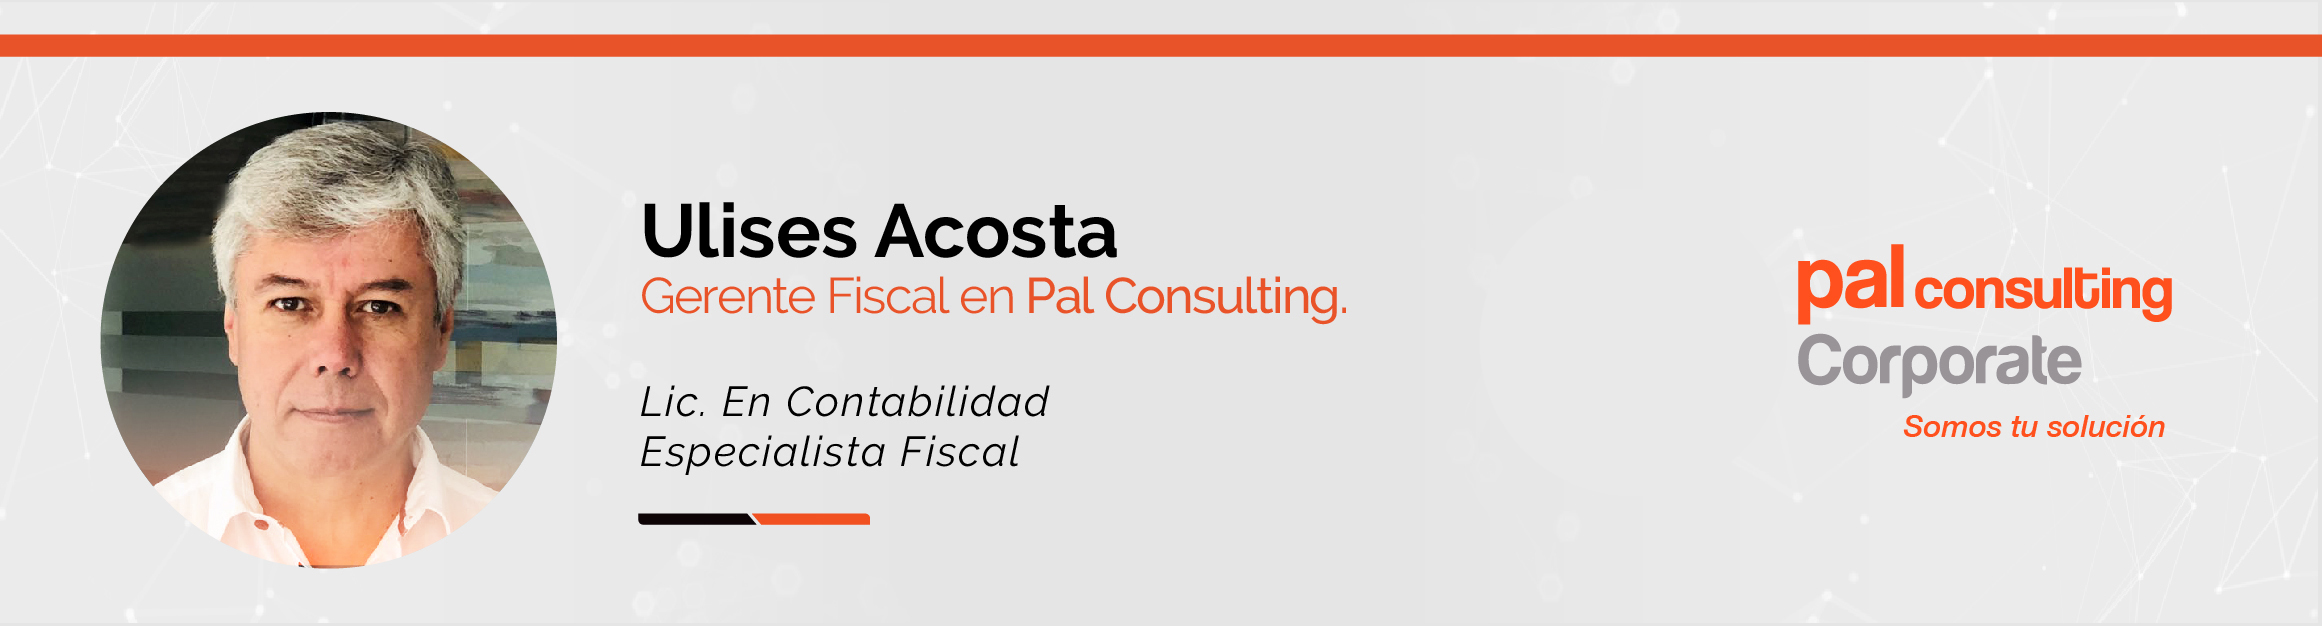 PalConsulting_TemaLibre_Firma_Articulo_Ulises Acosta.jpg